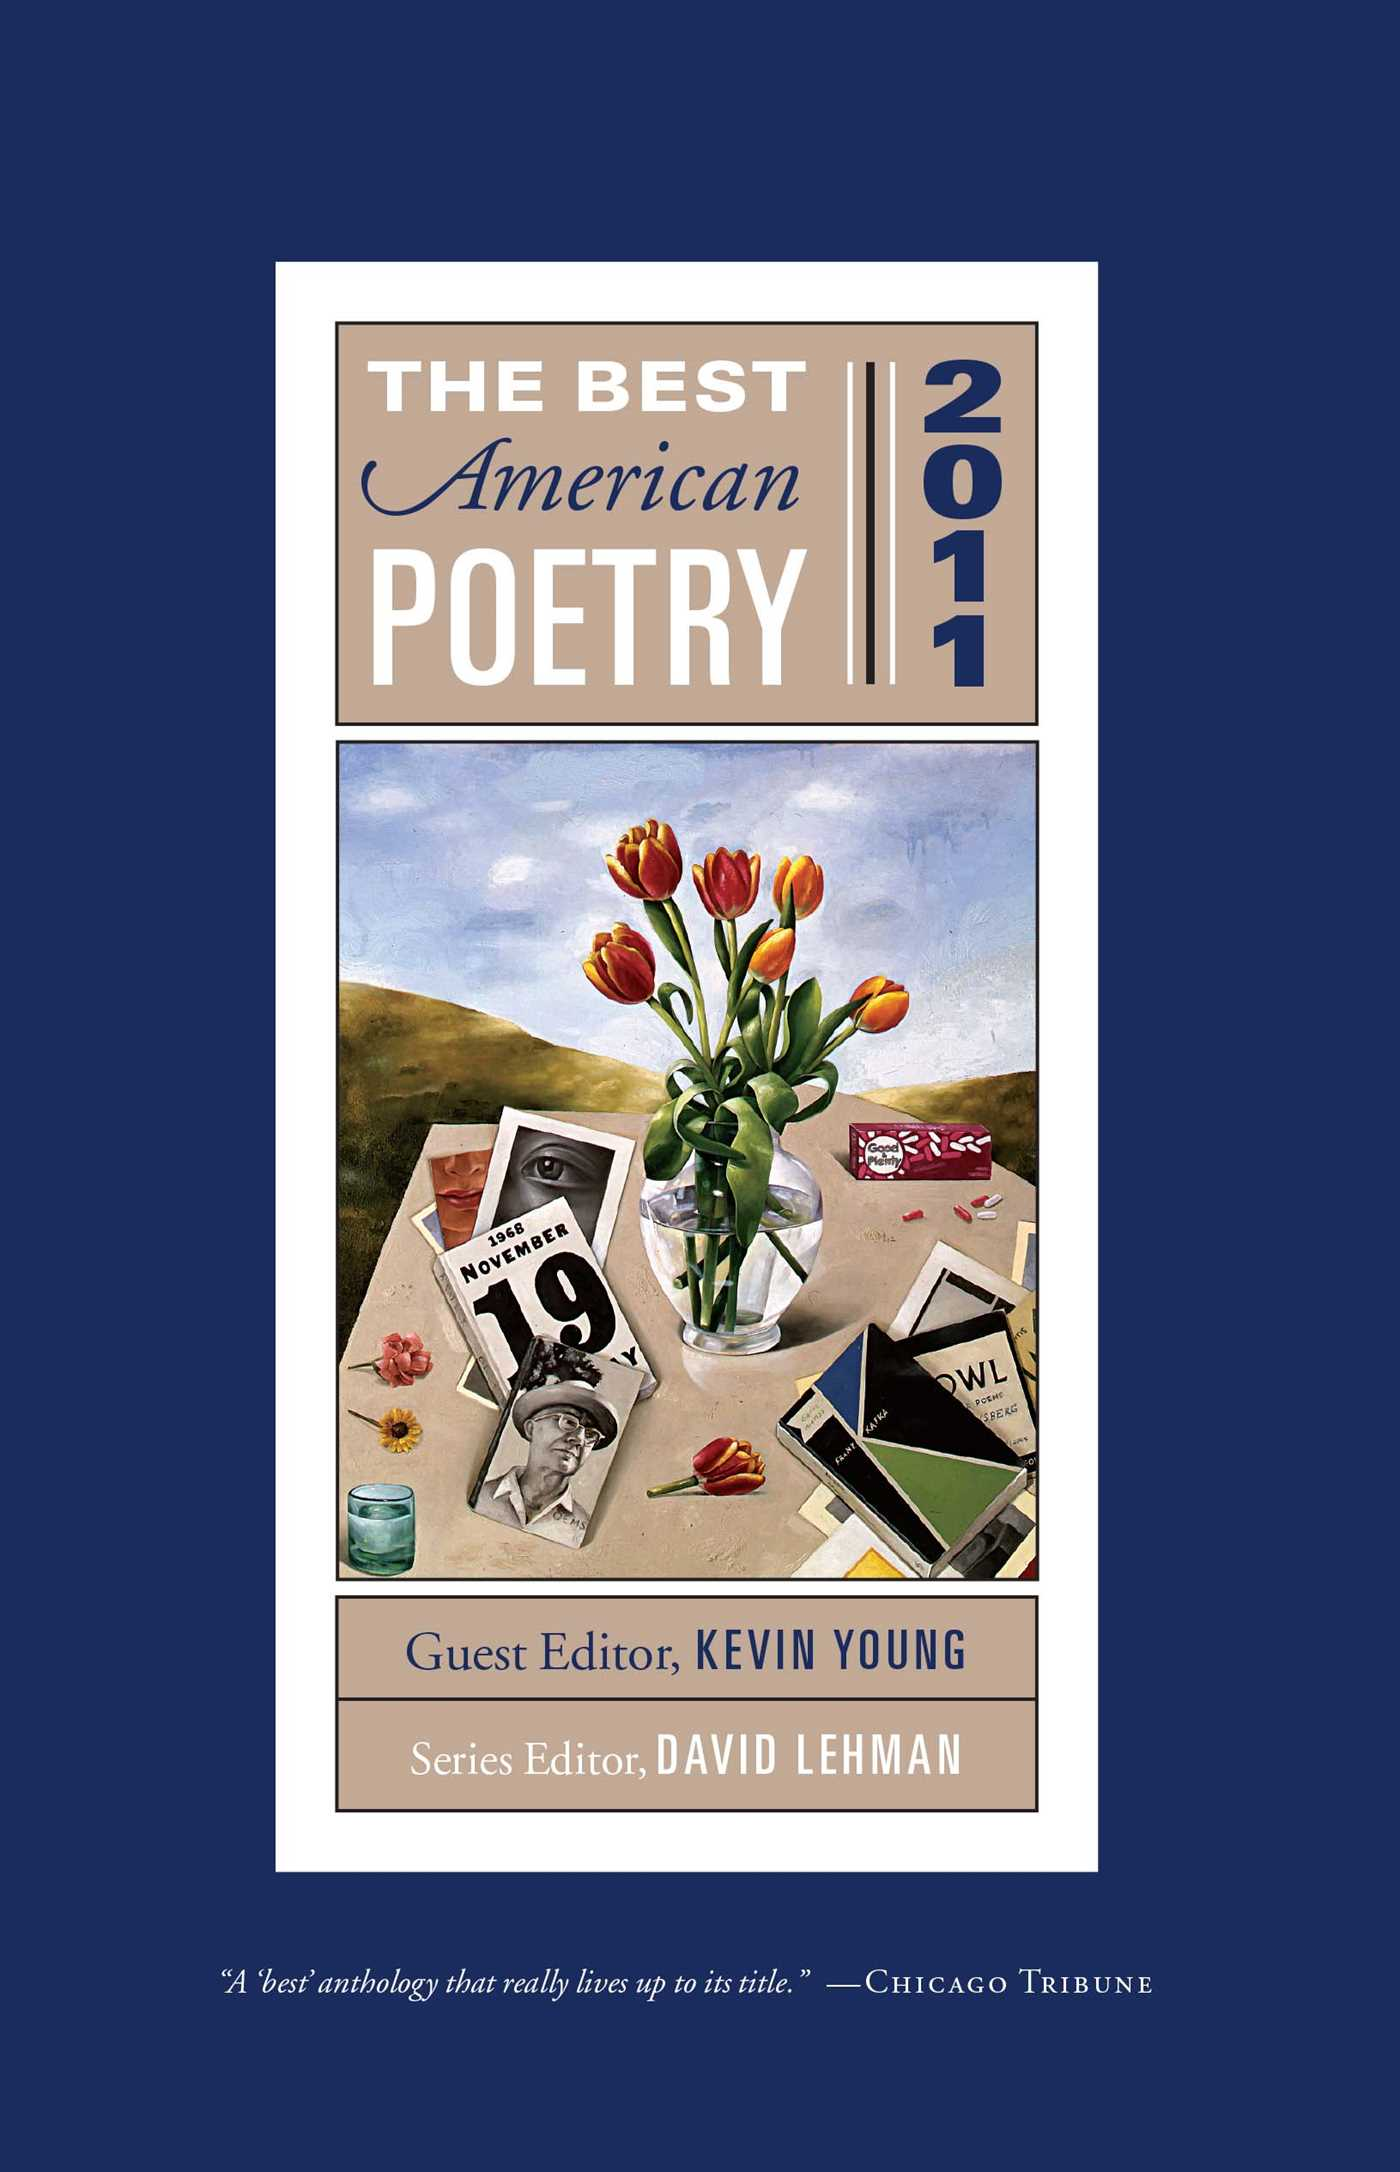 The best american poetry 2011 9781439181515 hr